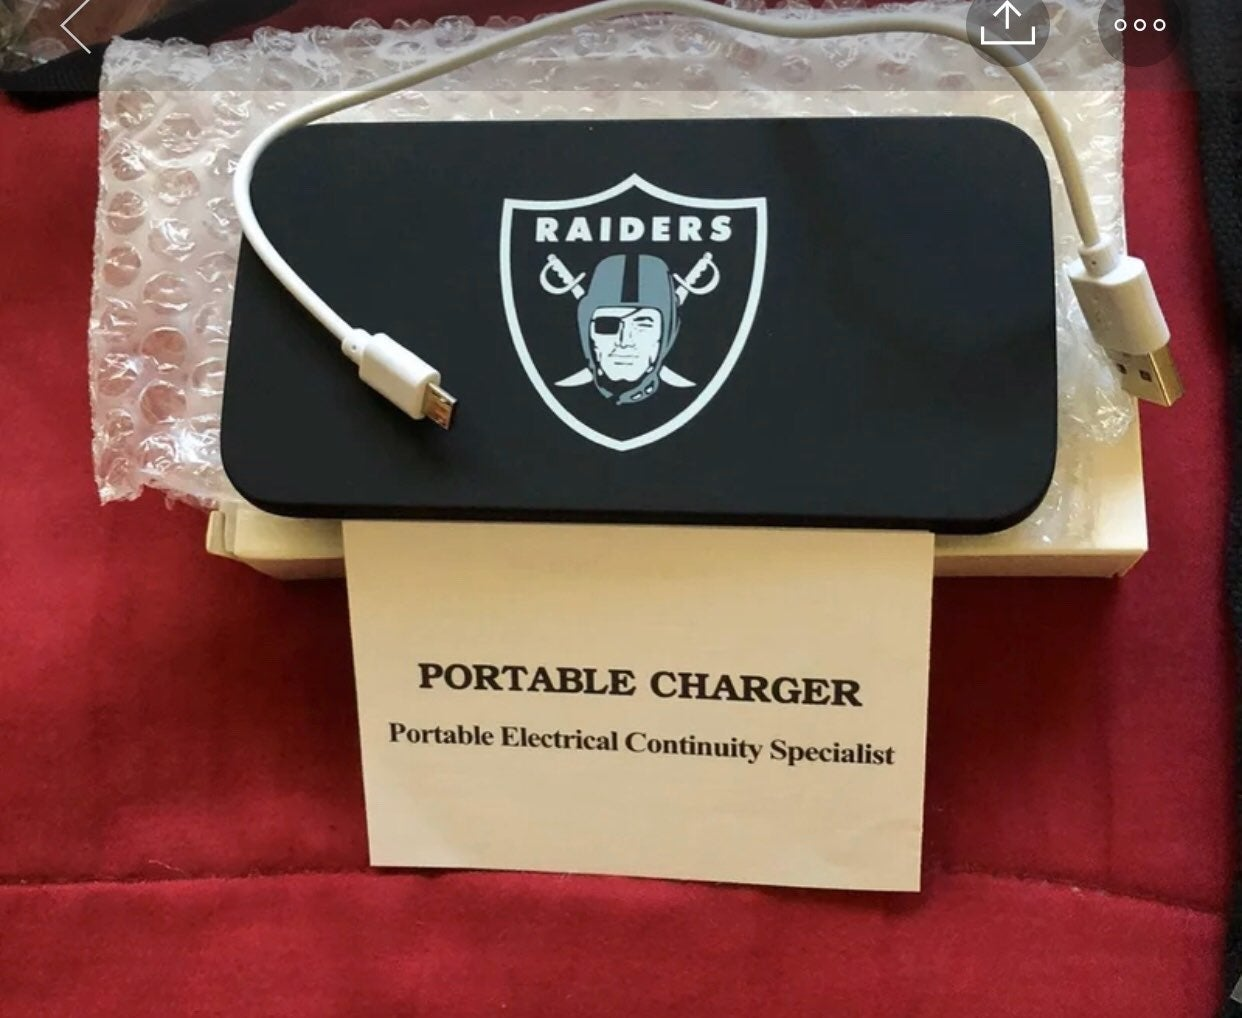 Raiders Portable Charger